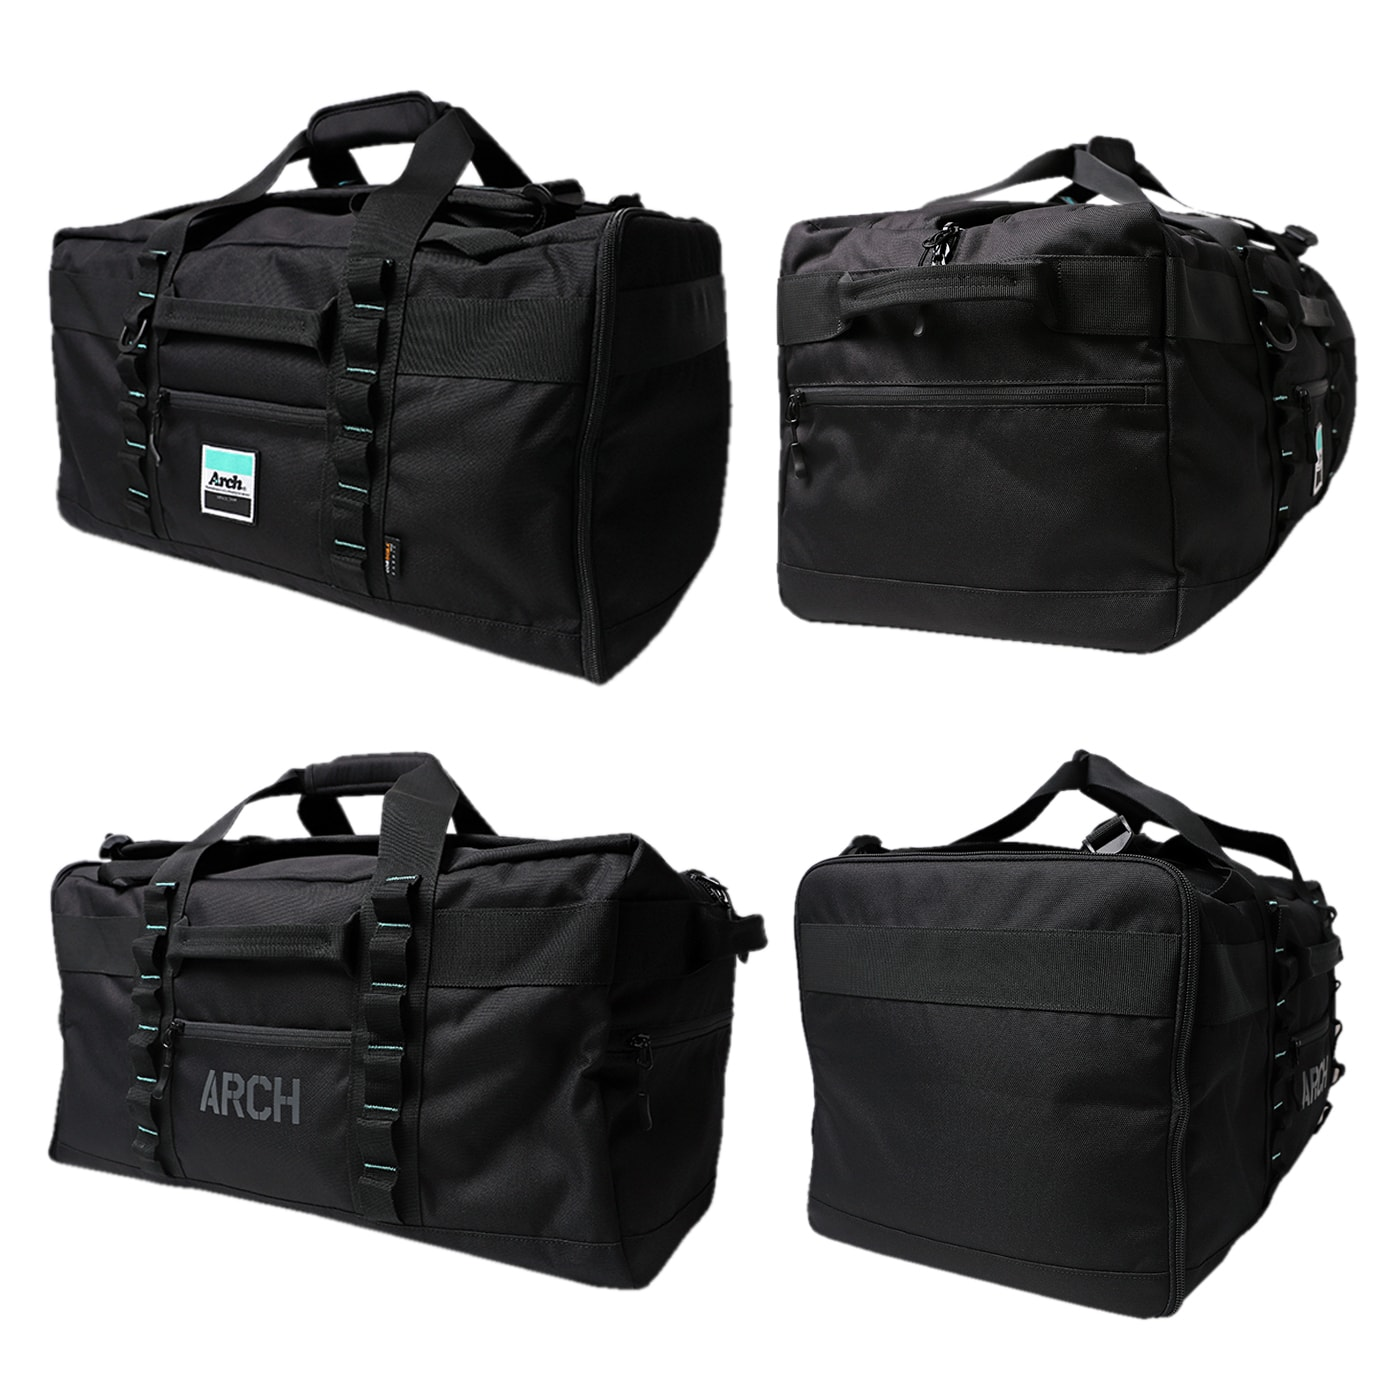 Arch tour duffel bag